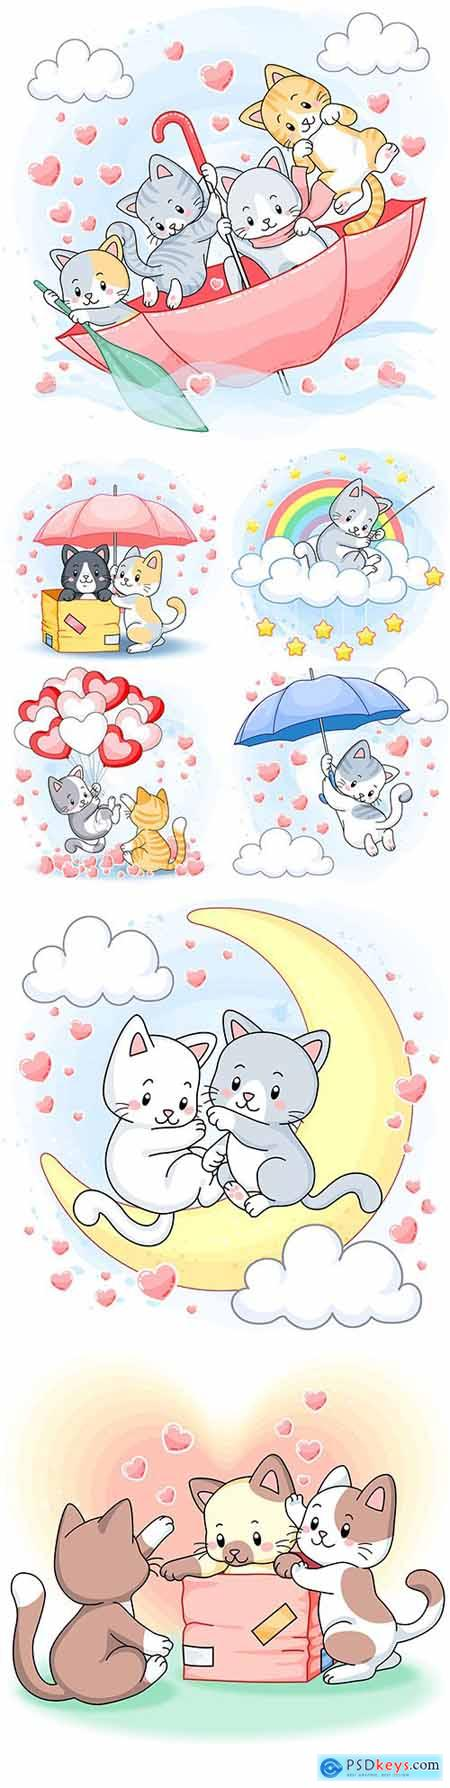 Nice funny kittens with umbrella and hearts illustration